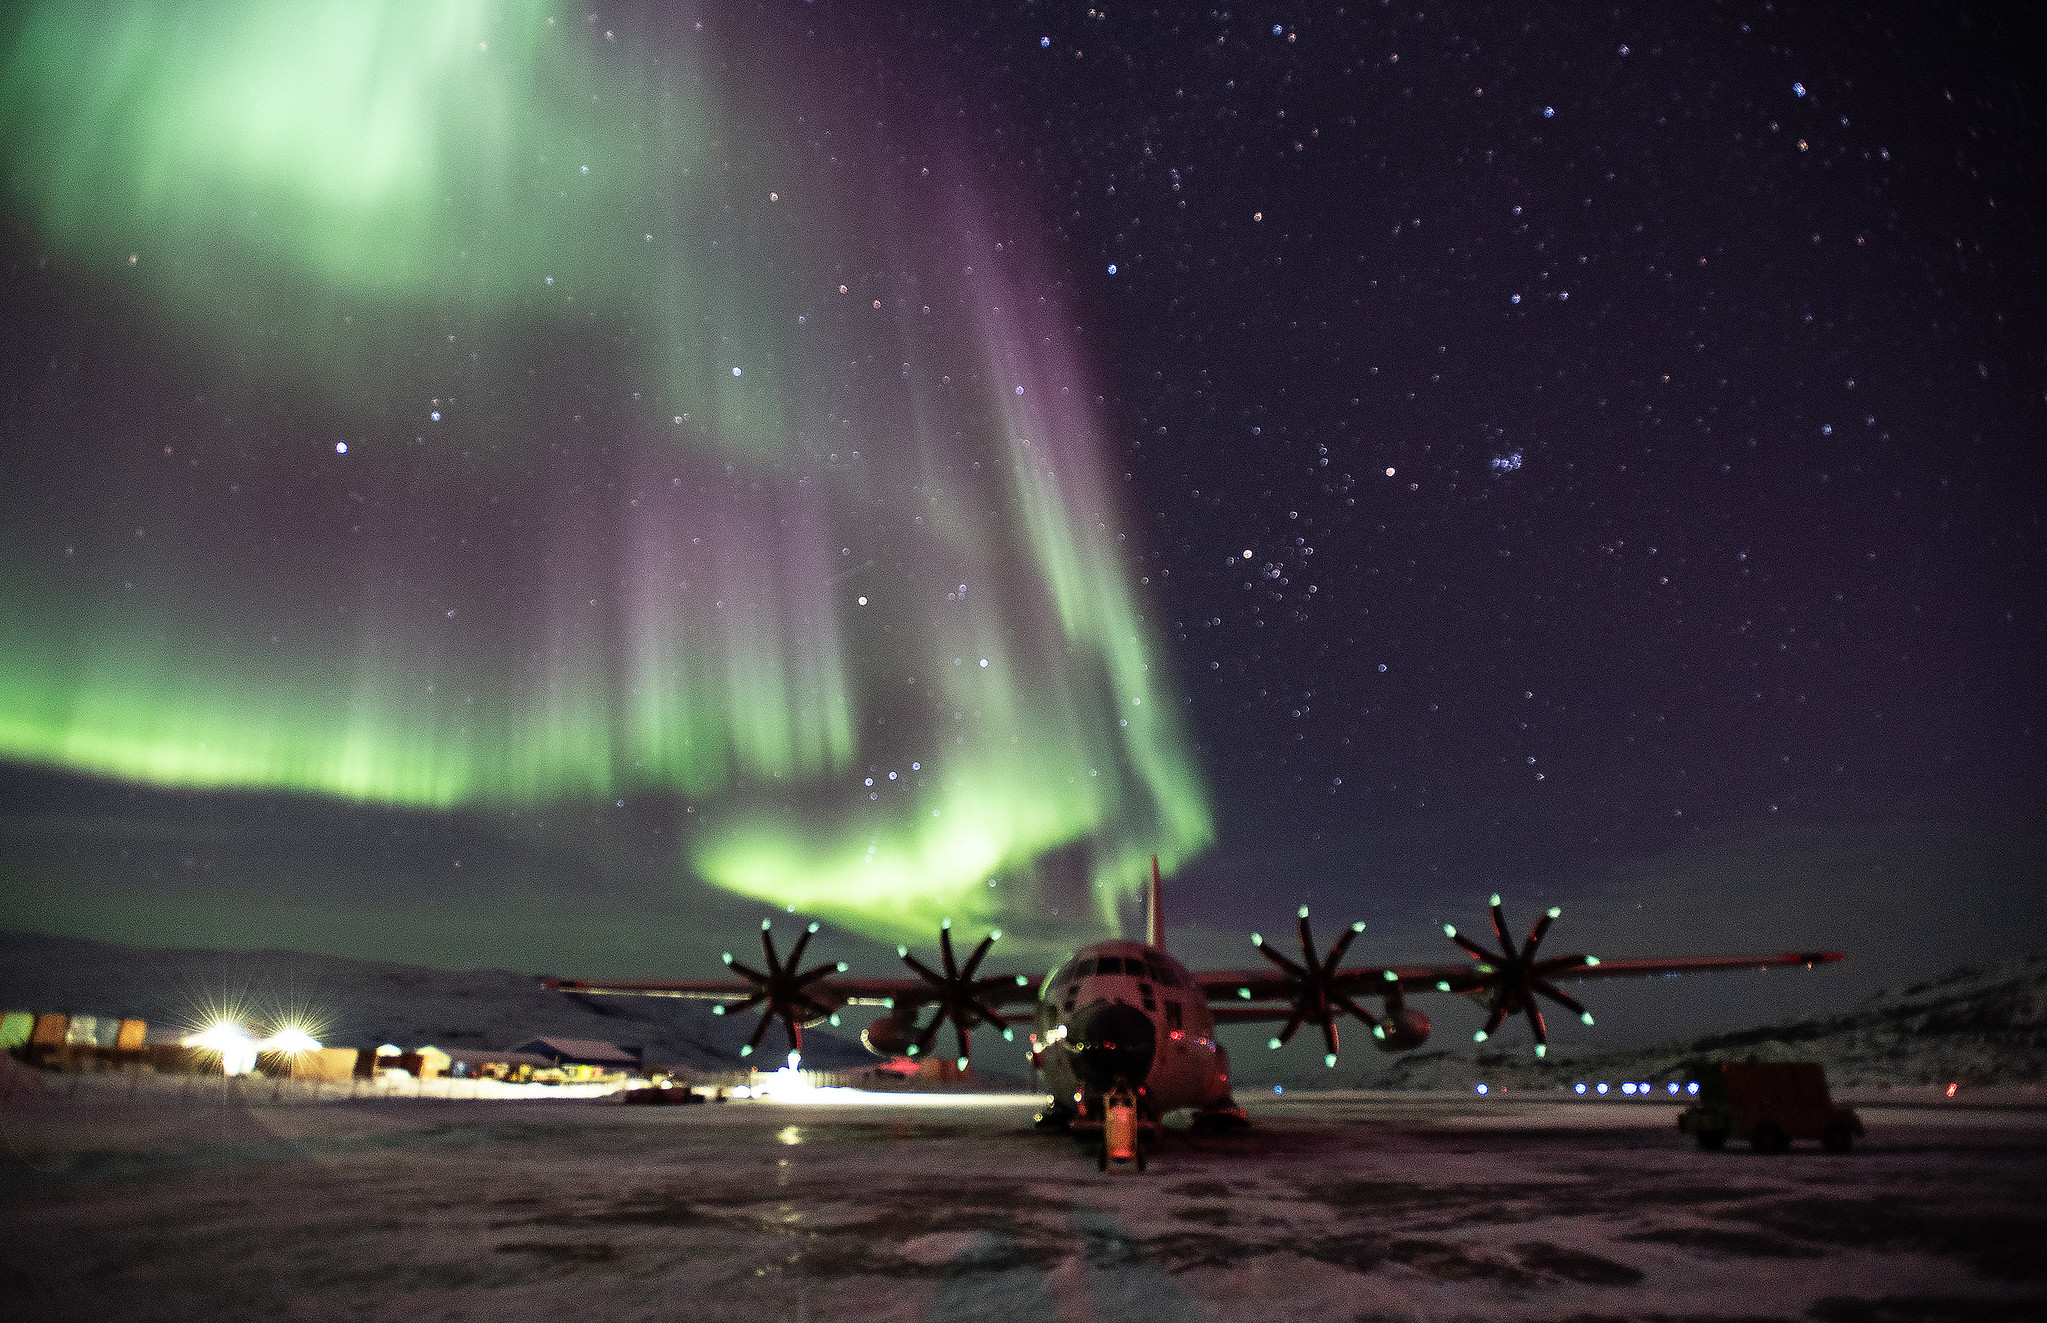 An LC-130 Skibird from the 109th Airlift Wing sits on the ramp at Kangerlussuaq Airport, Greenland, with the Northern Lights dazzling in the sky above. (Lt. Col. Kevin Jones/National Guard)